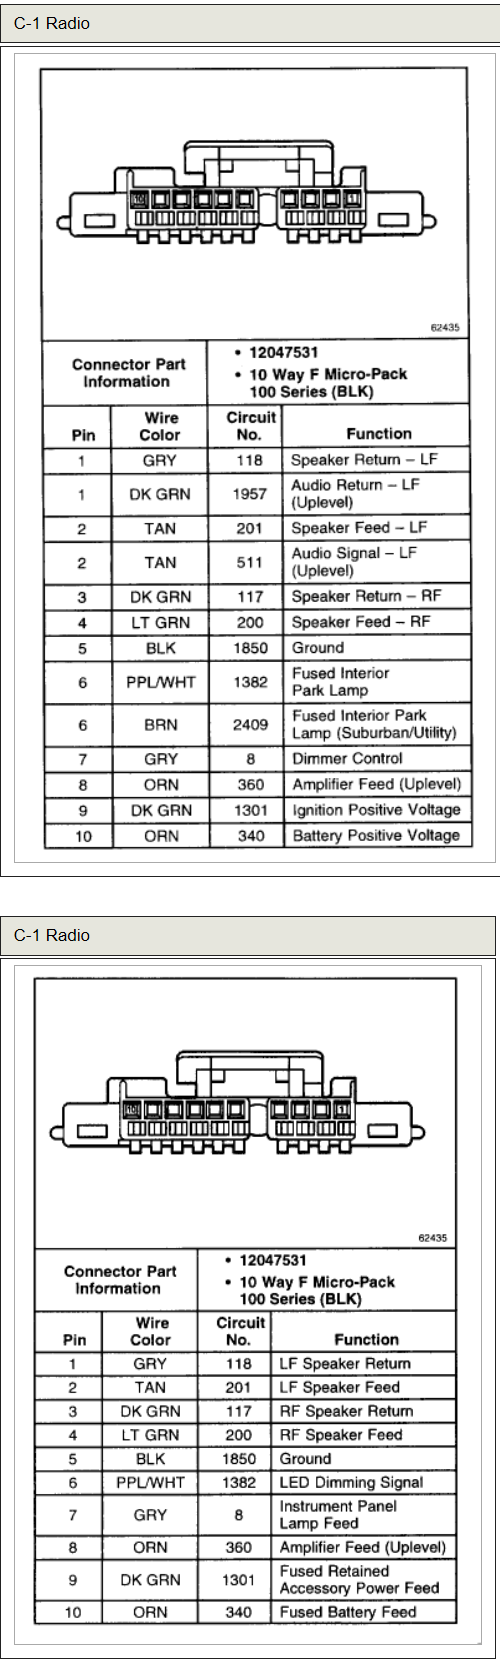 [DIAGRAM_09CH]  CHEVROLET Car Radio Stereo Audio Wiring Diagram Autoradio connector wire  installation schematic schema esquema de conexiones Anschlusskammern  konektor | 2001 Blazer Stereo Wiring Diagram |  | Schematics diagrams, car radio wiring diagram, freeware software